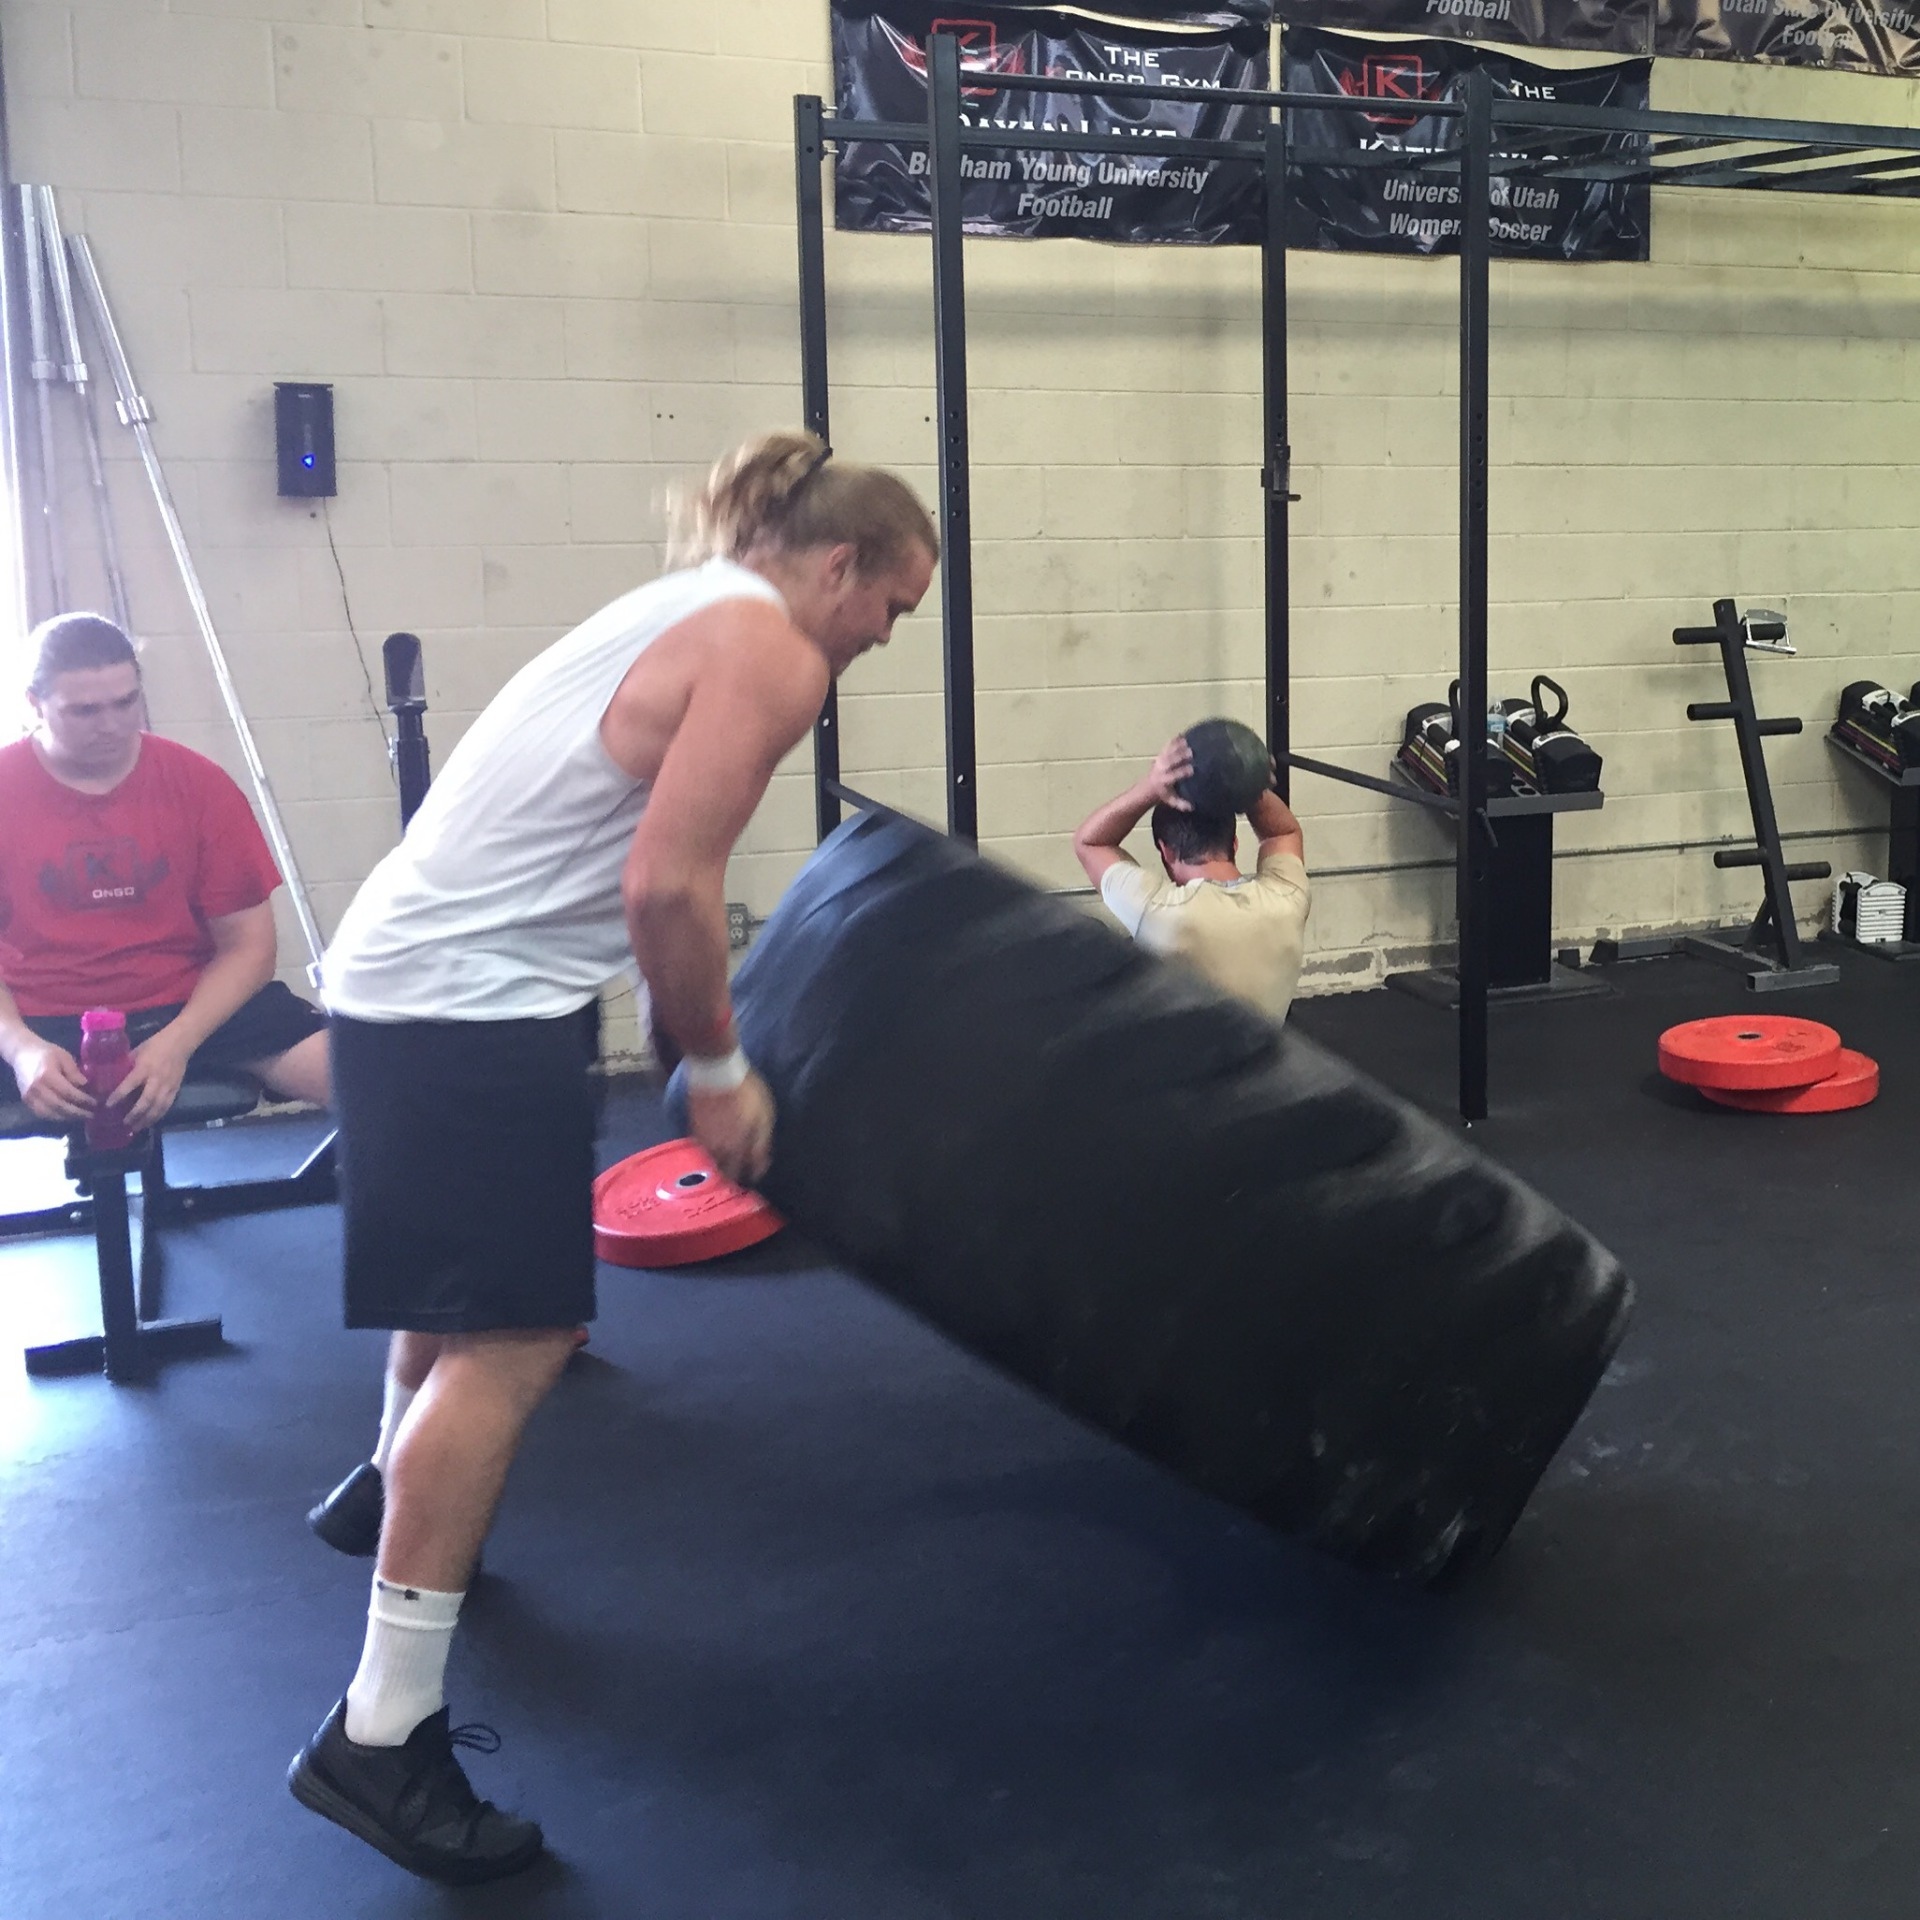 Kongo athlete Connor Taylor beasting tire flips